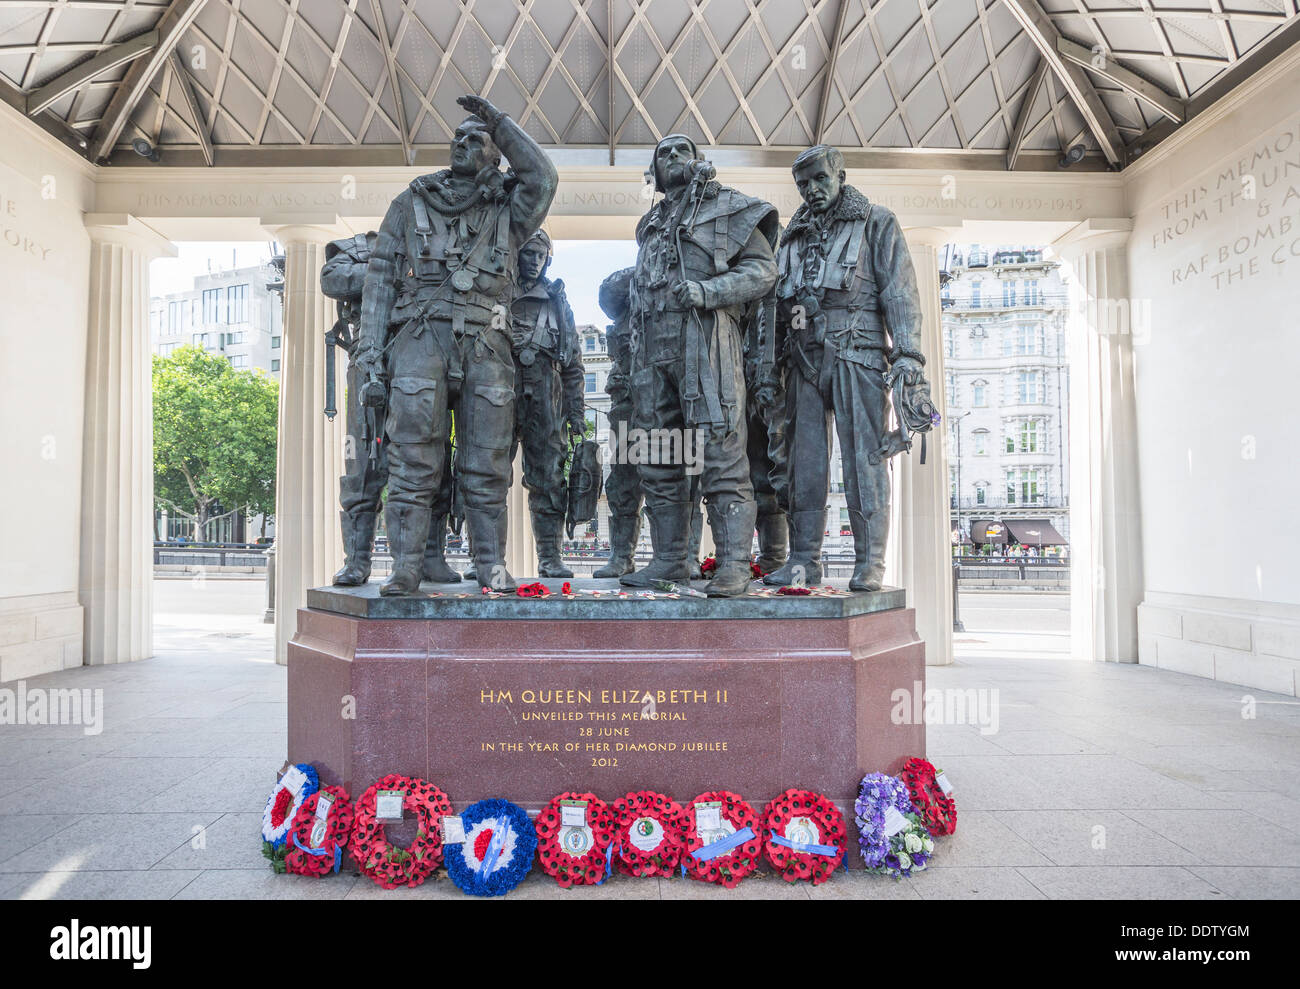 RAF Bomber Command Memorial, Green Park, London - unveiled by Queen Elizabeth II in 2012 - statues of heroic aircrew from WWII and poppy wreaths - Stock Image